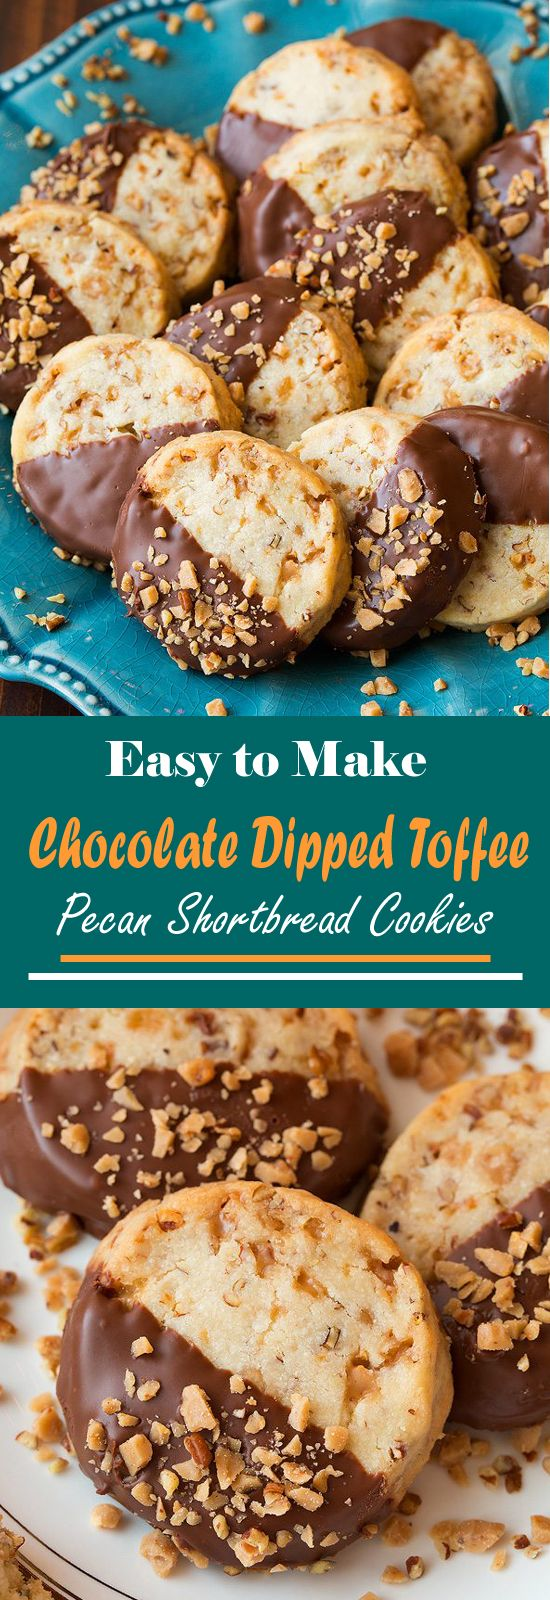 Easy to Make Chocolate Dipped Toffee Pecan Shortbread Cookies